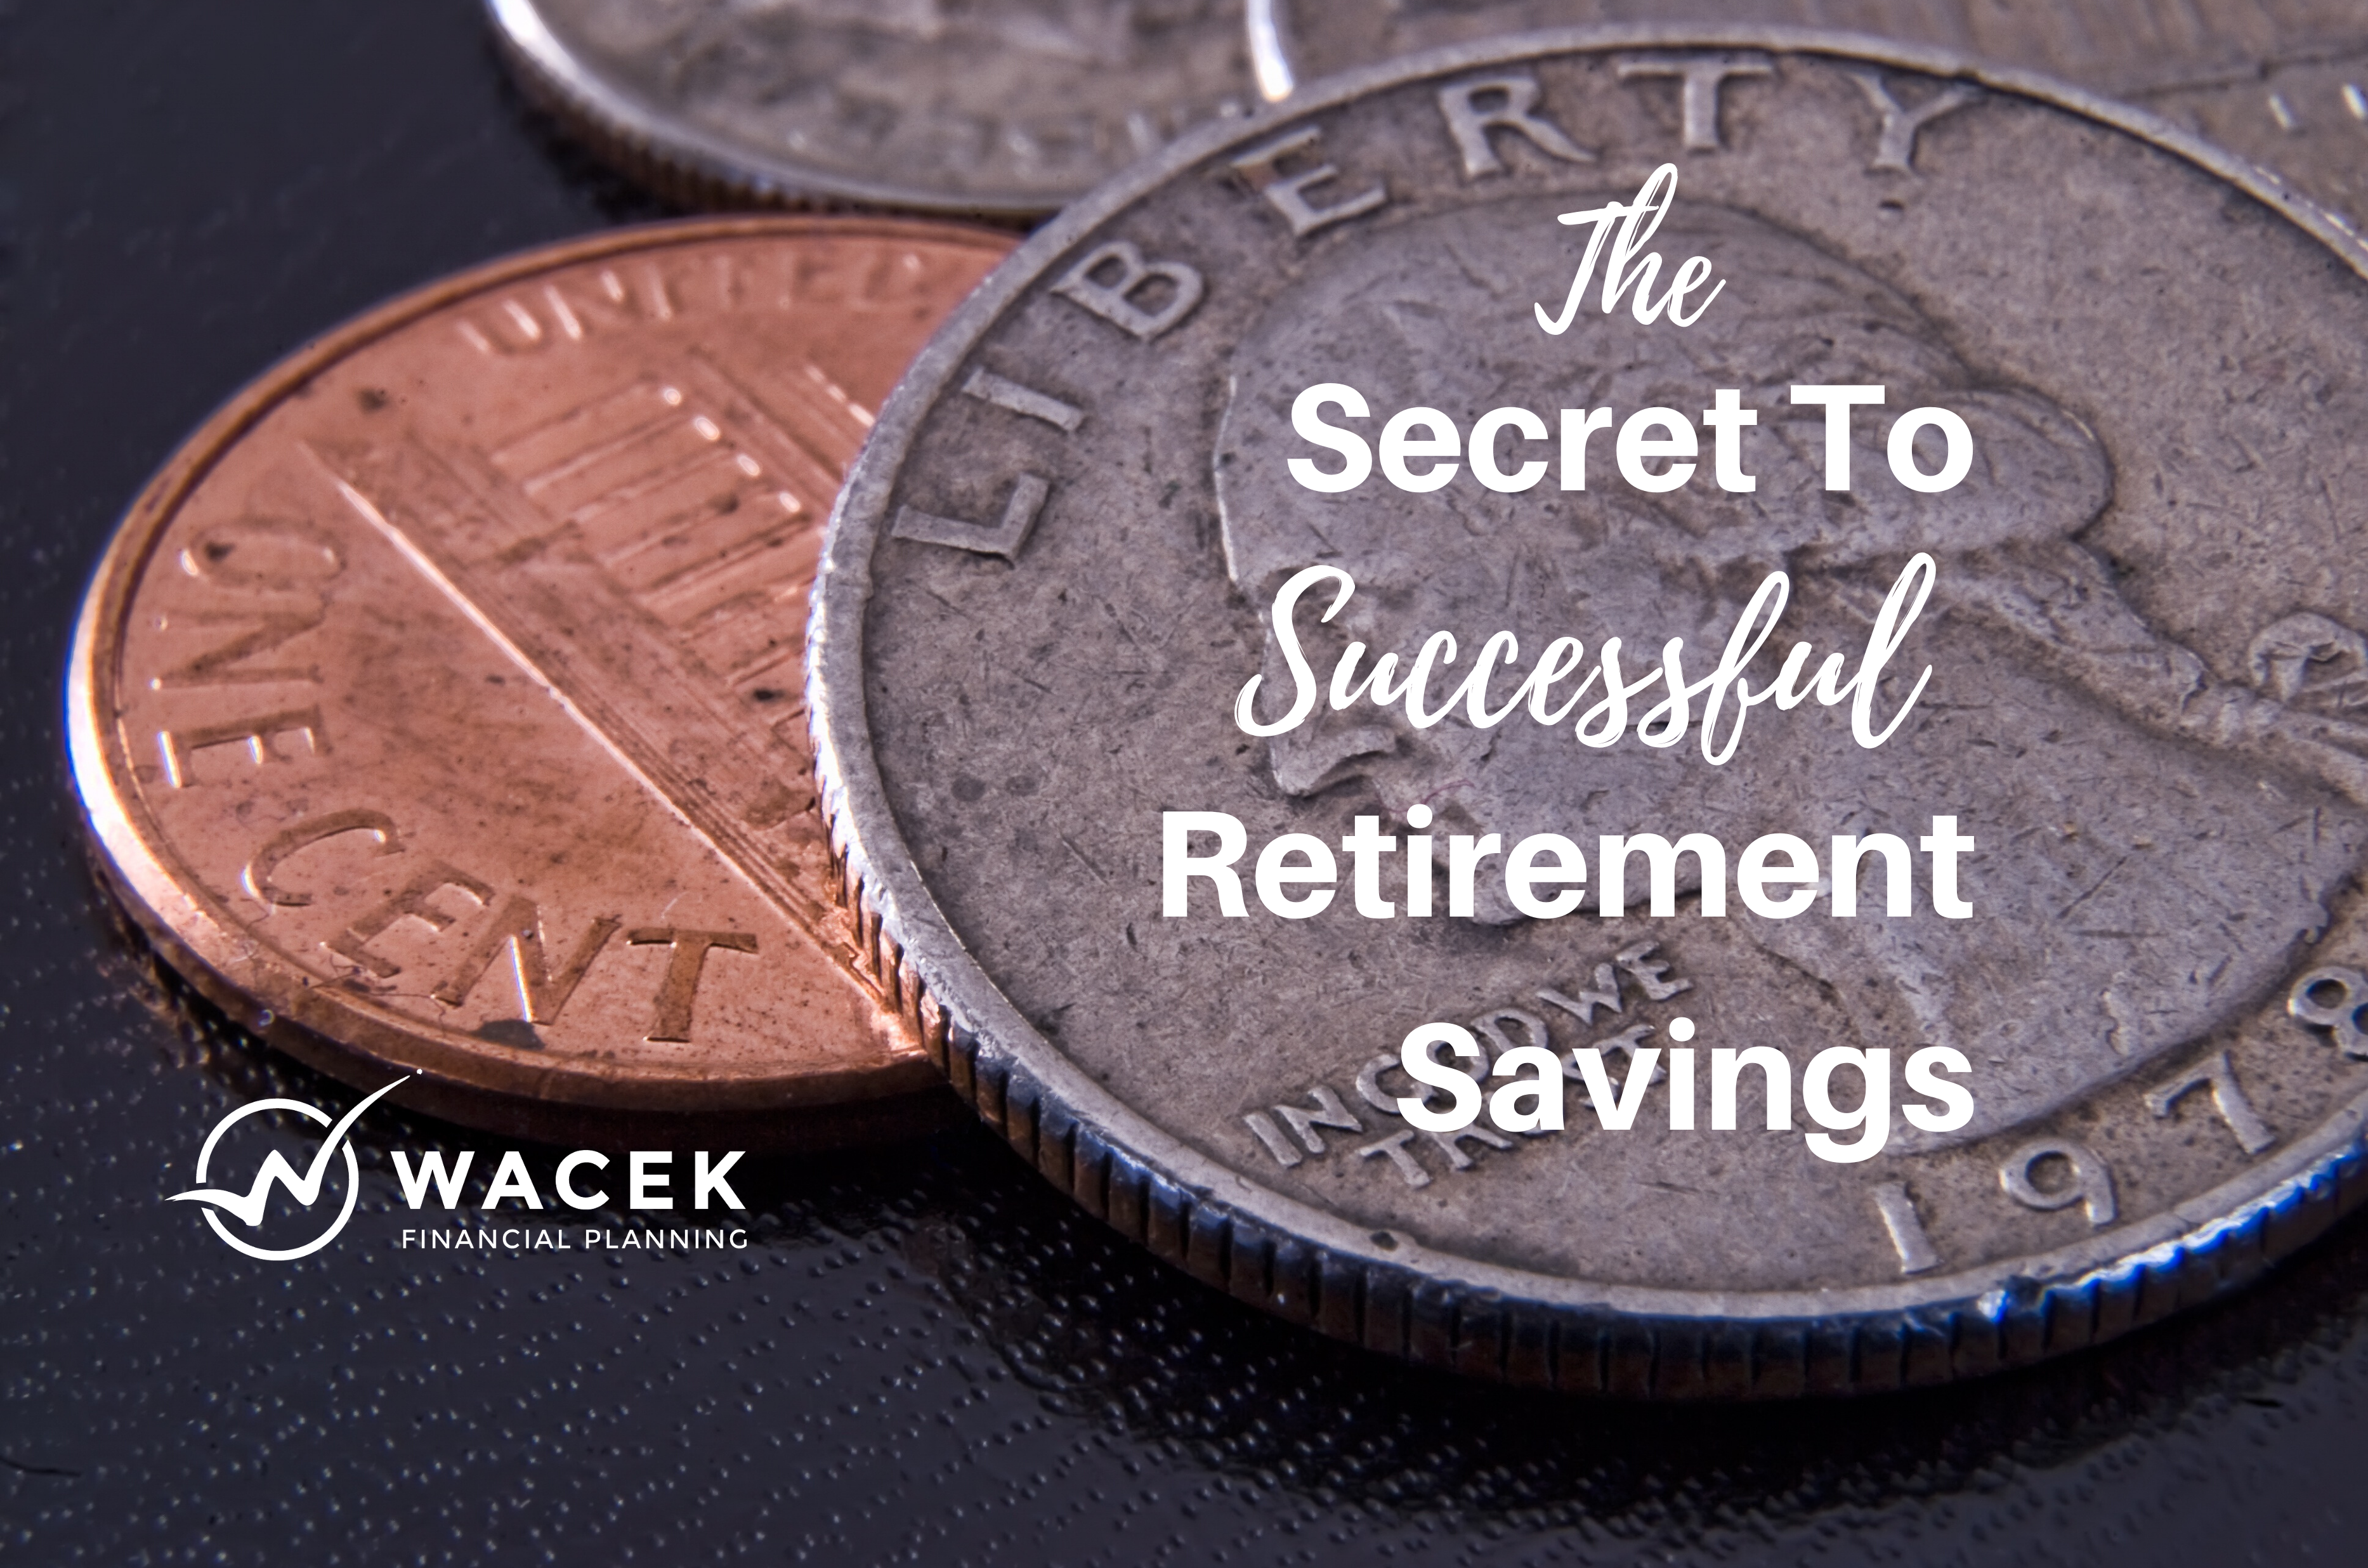 The Secret To Successful Retirement Savings Thumbnail